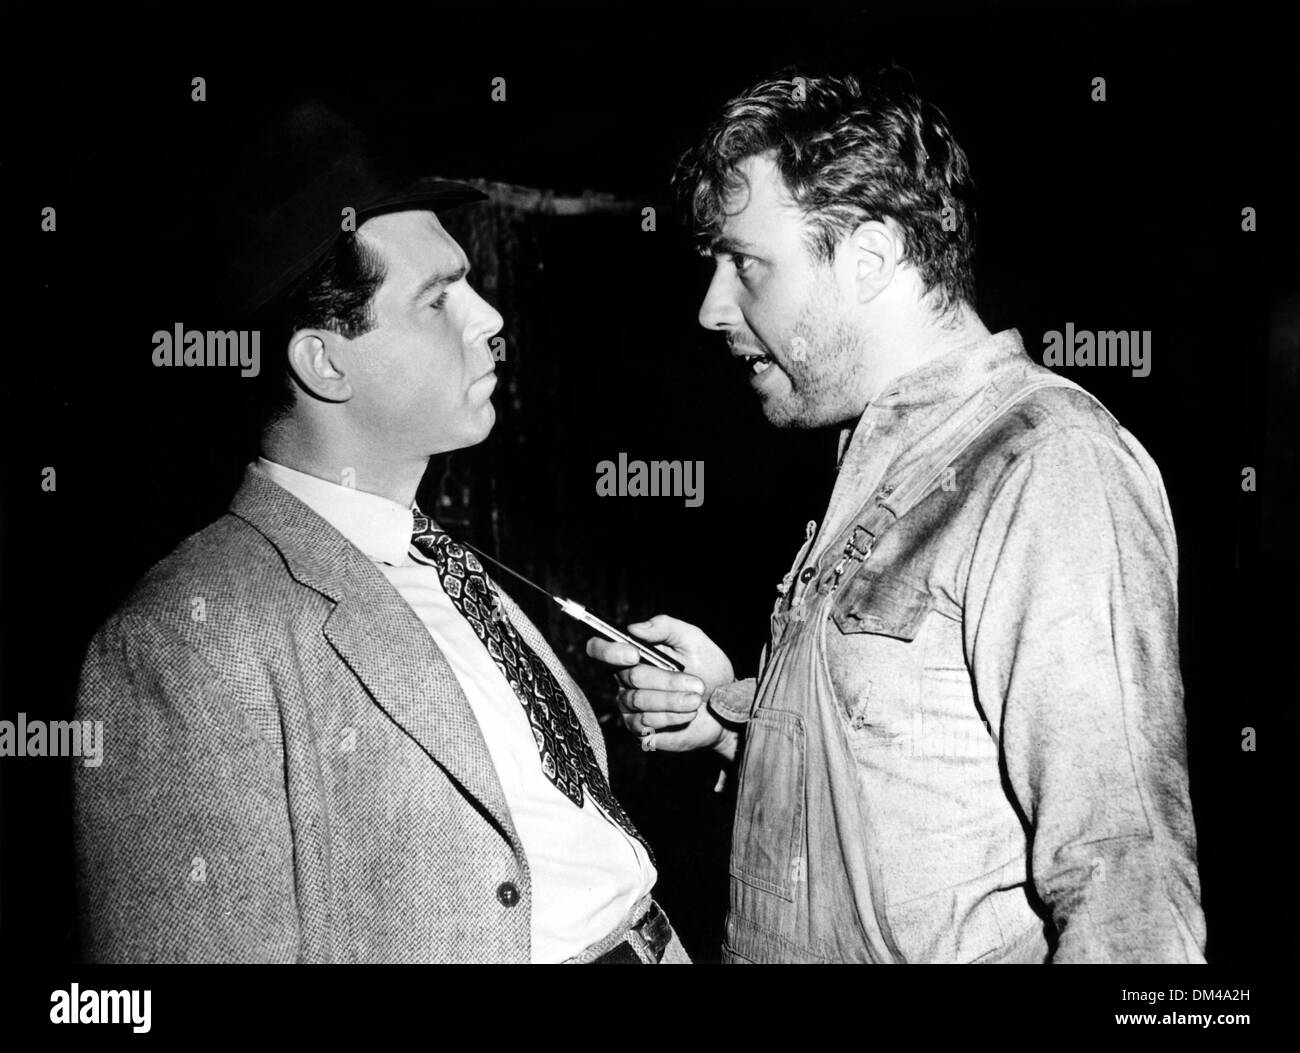 MURDER HE SAYS (1945) FRED MACMURRAY, PETER WHITNEY, GEORGE MARSHALL (DIR) MUHS 004 MOVIESTORE COLLECTION LTD - Stock Image